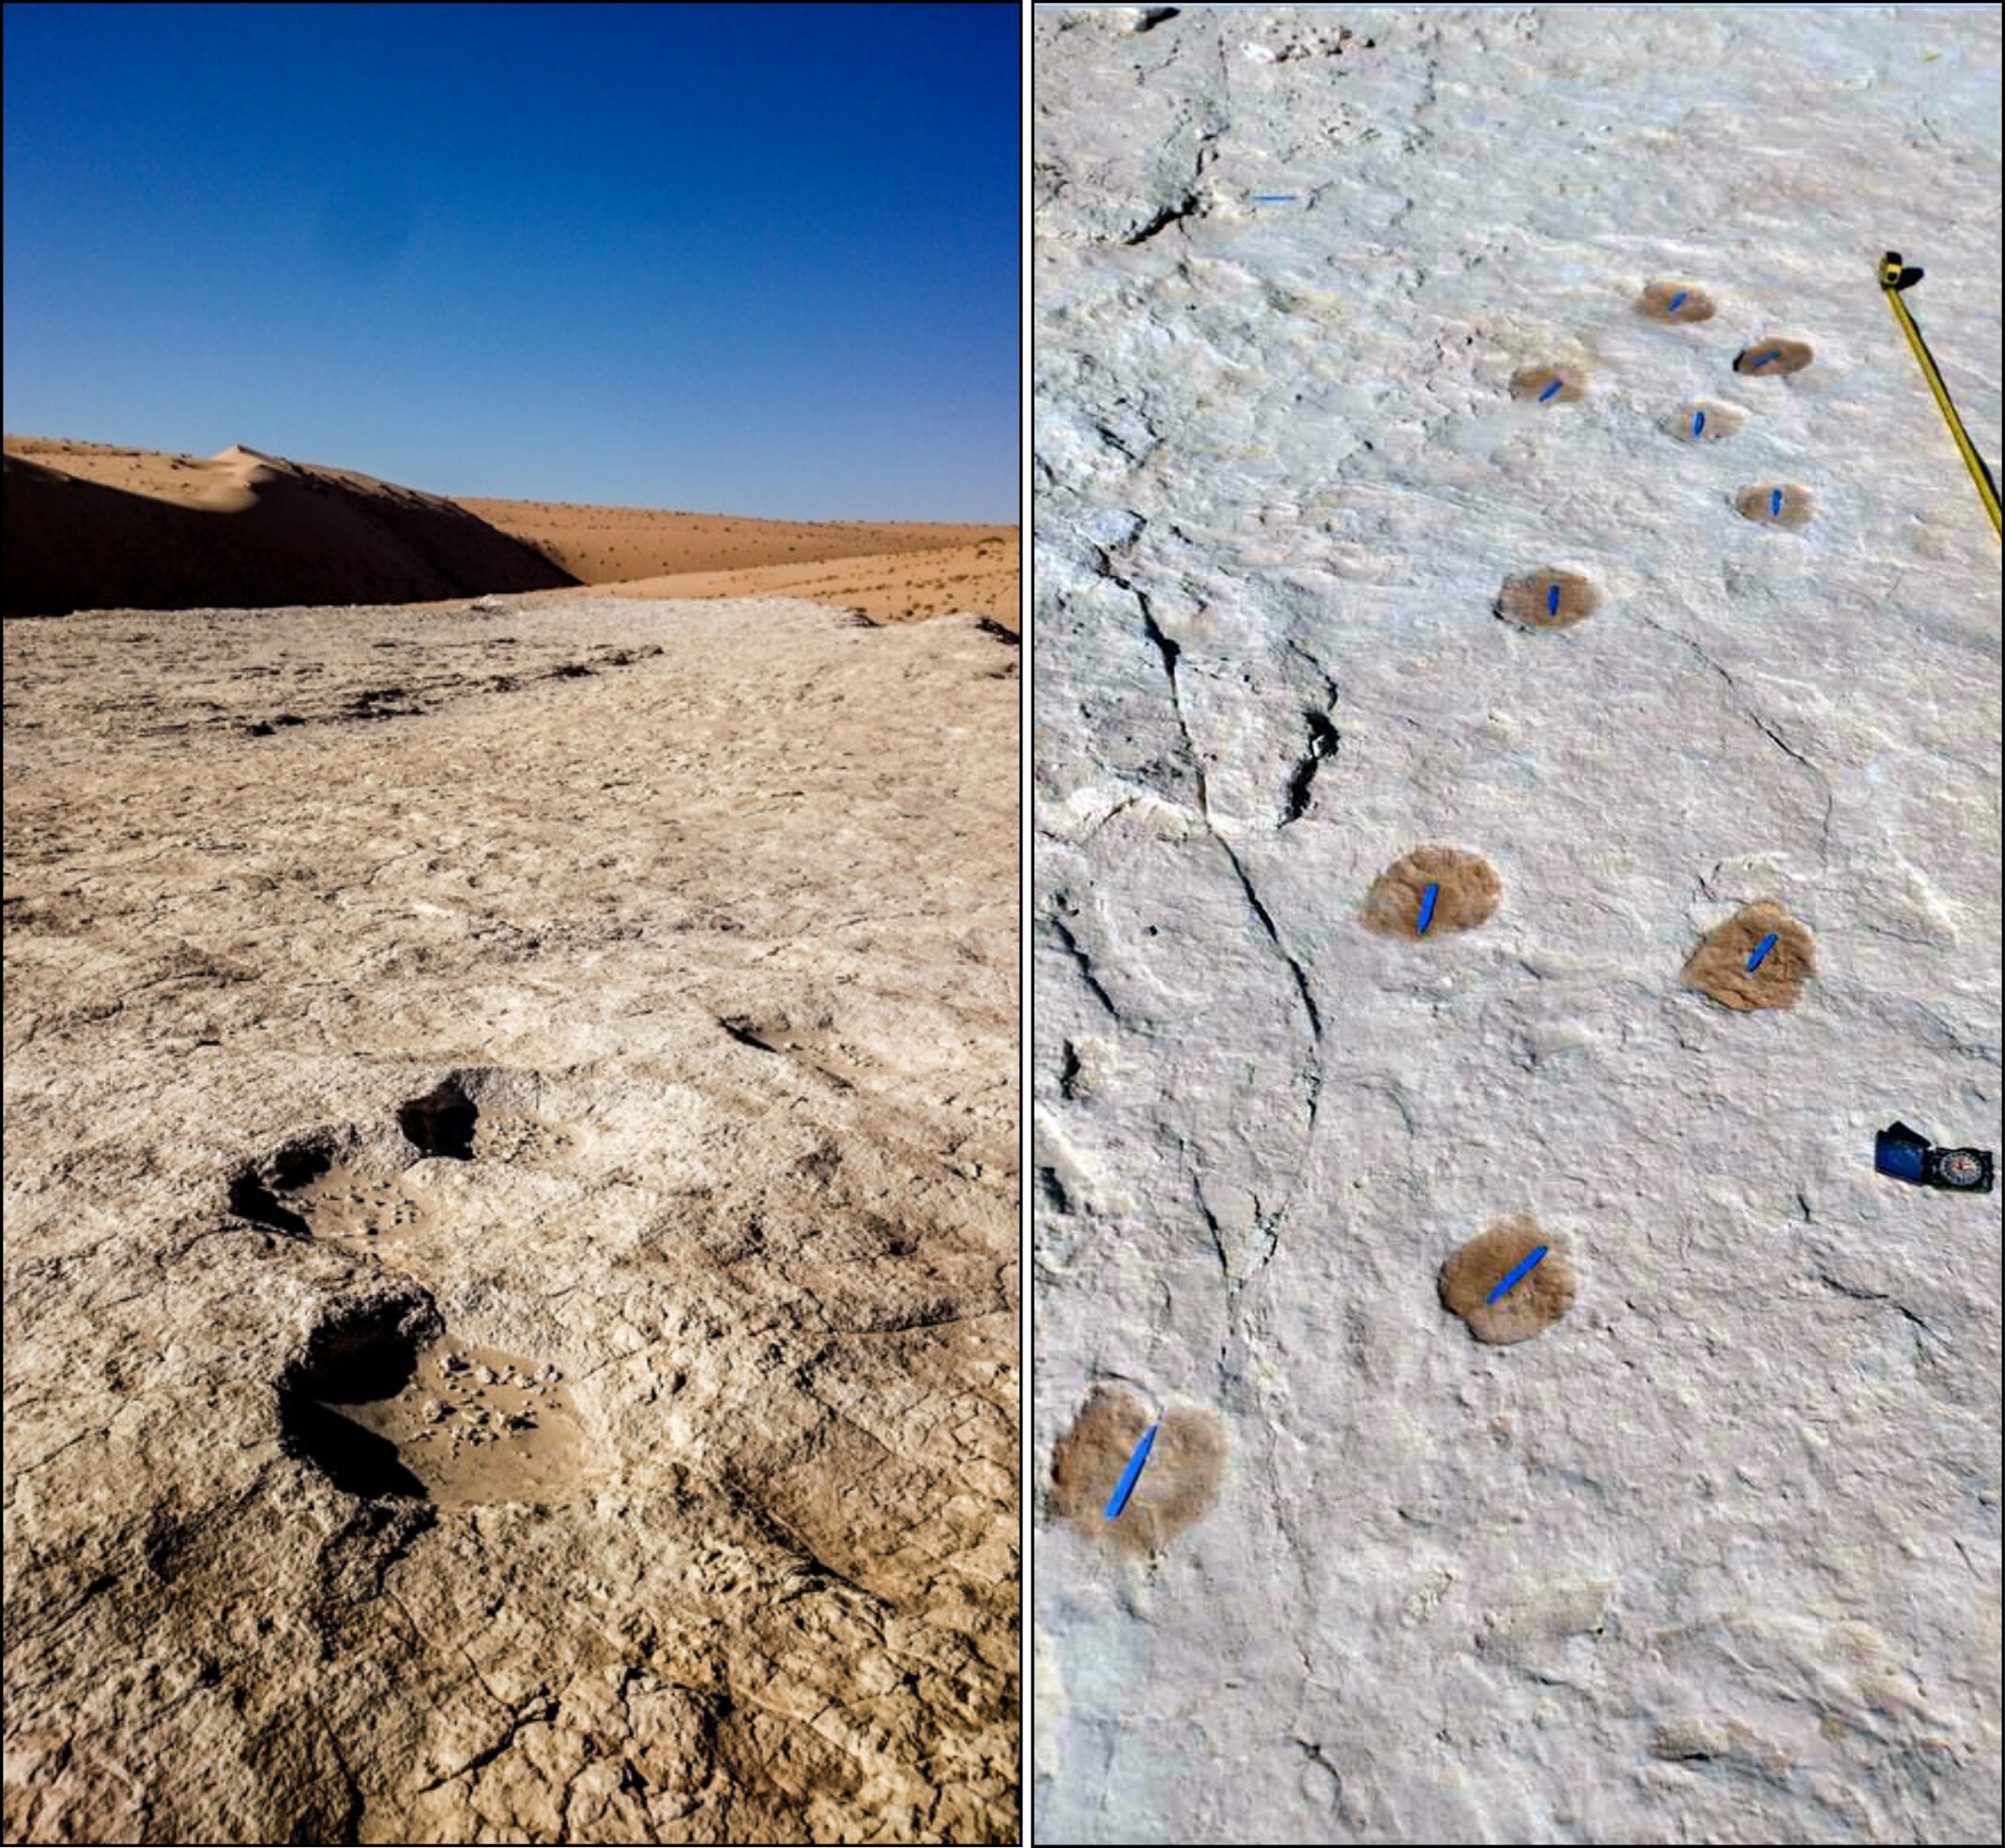 Elephant (left) and camel trackway (right). (Stewart et al, Science Advances, 2020)